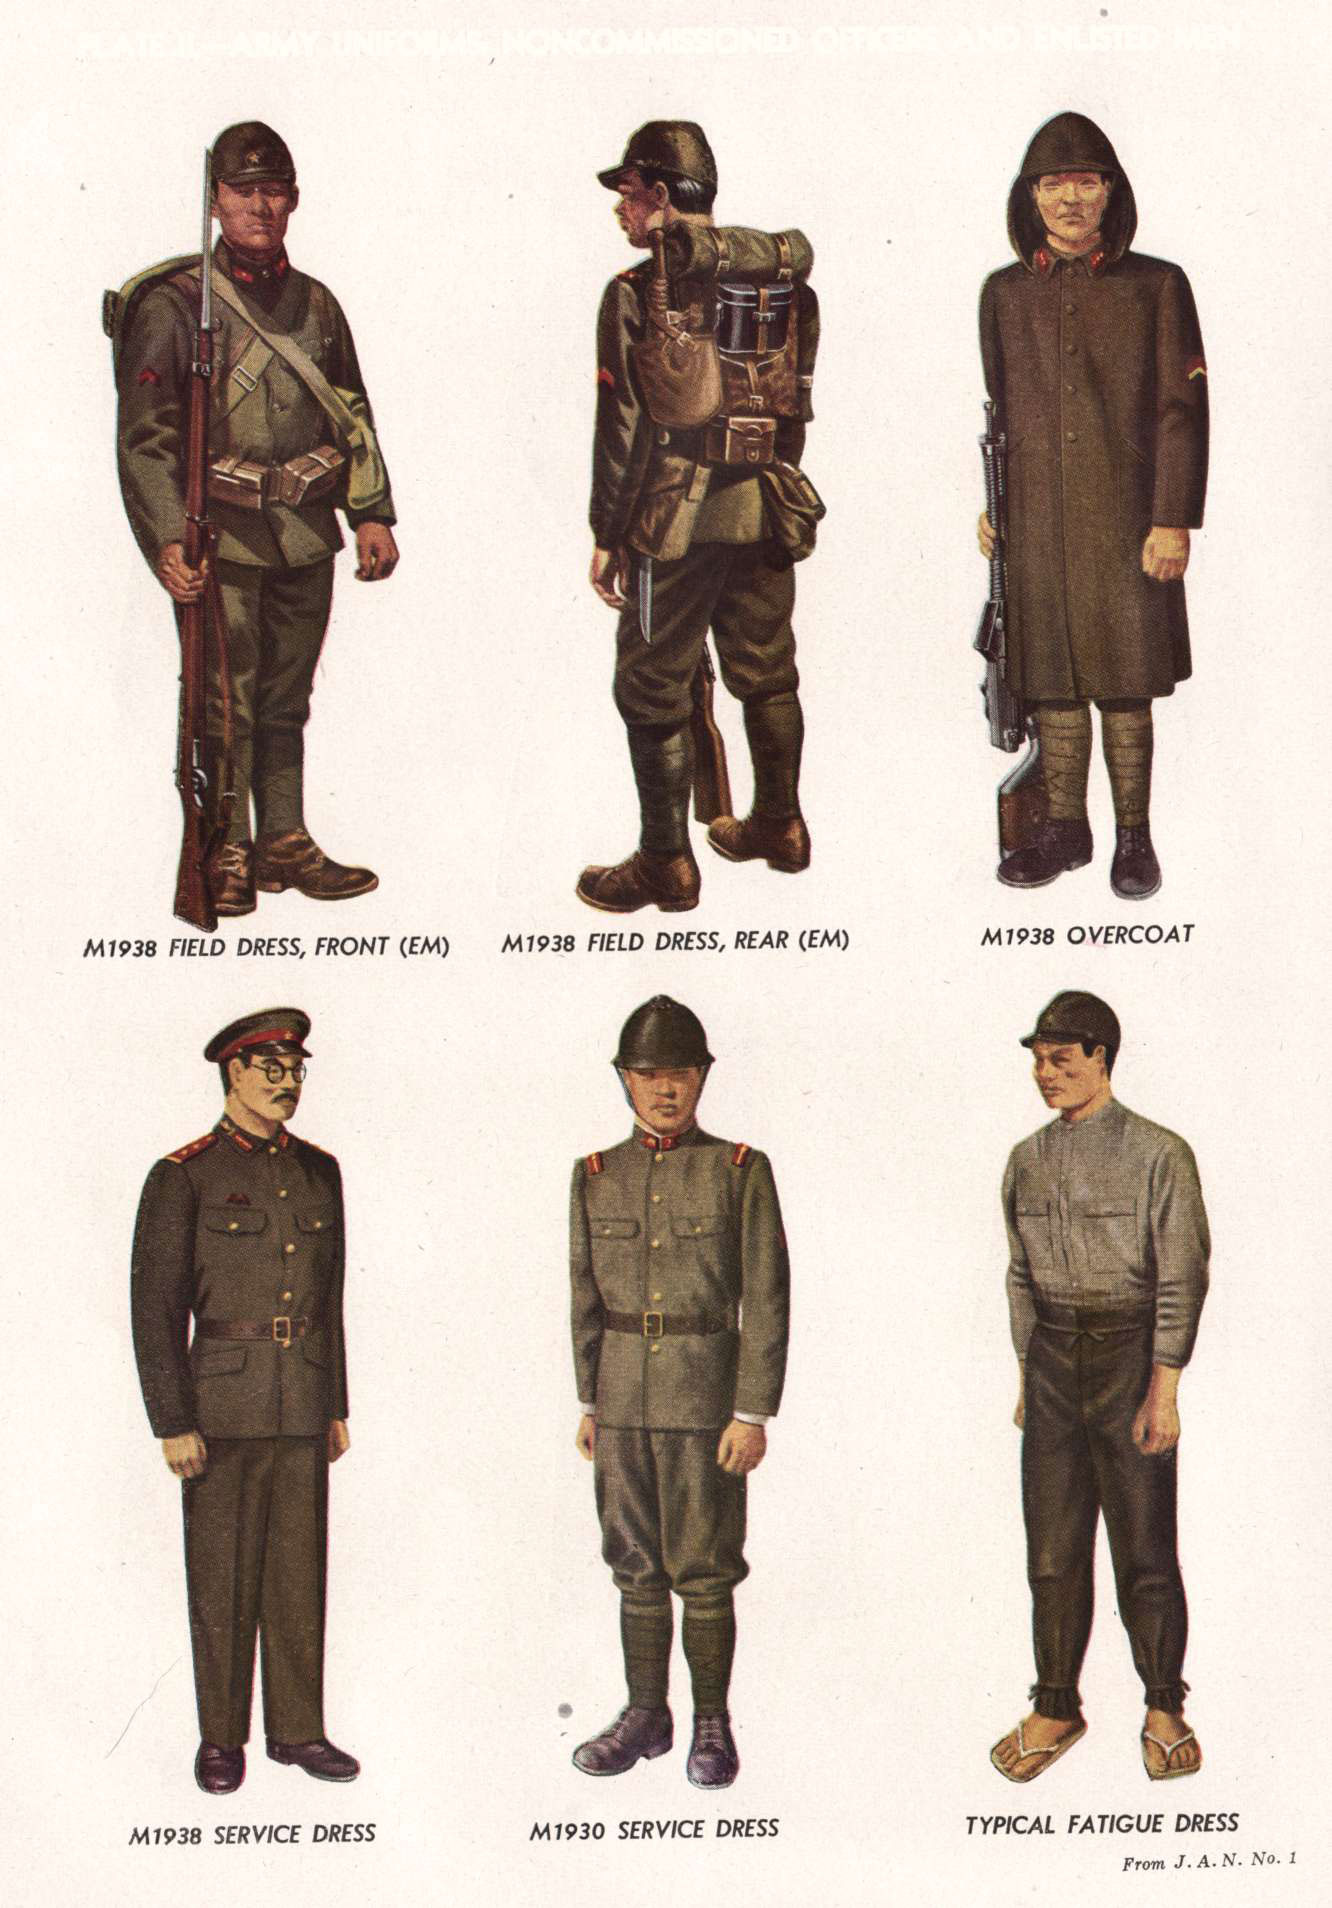 PLATE II.--ARMY UNIFORMS: NONCOMMISSIONED OFFICERS AND ENLISTED MEN